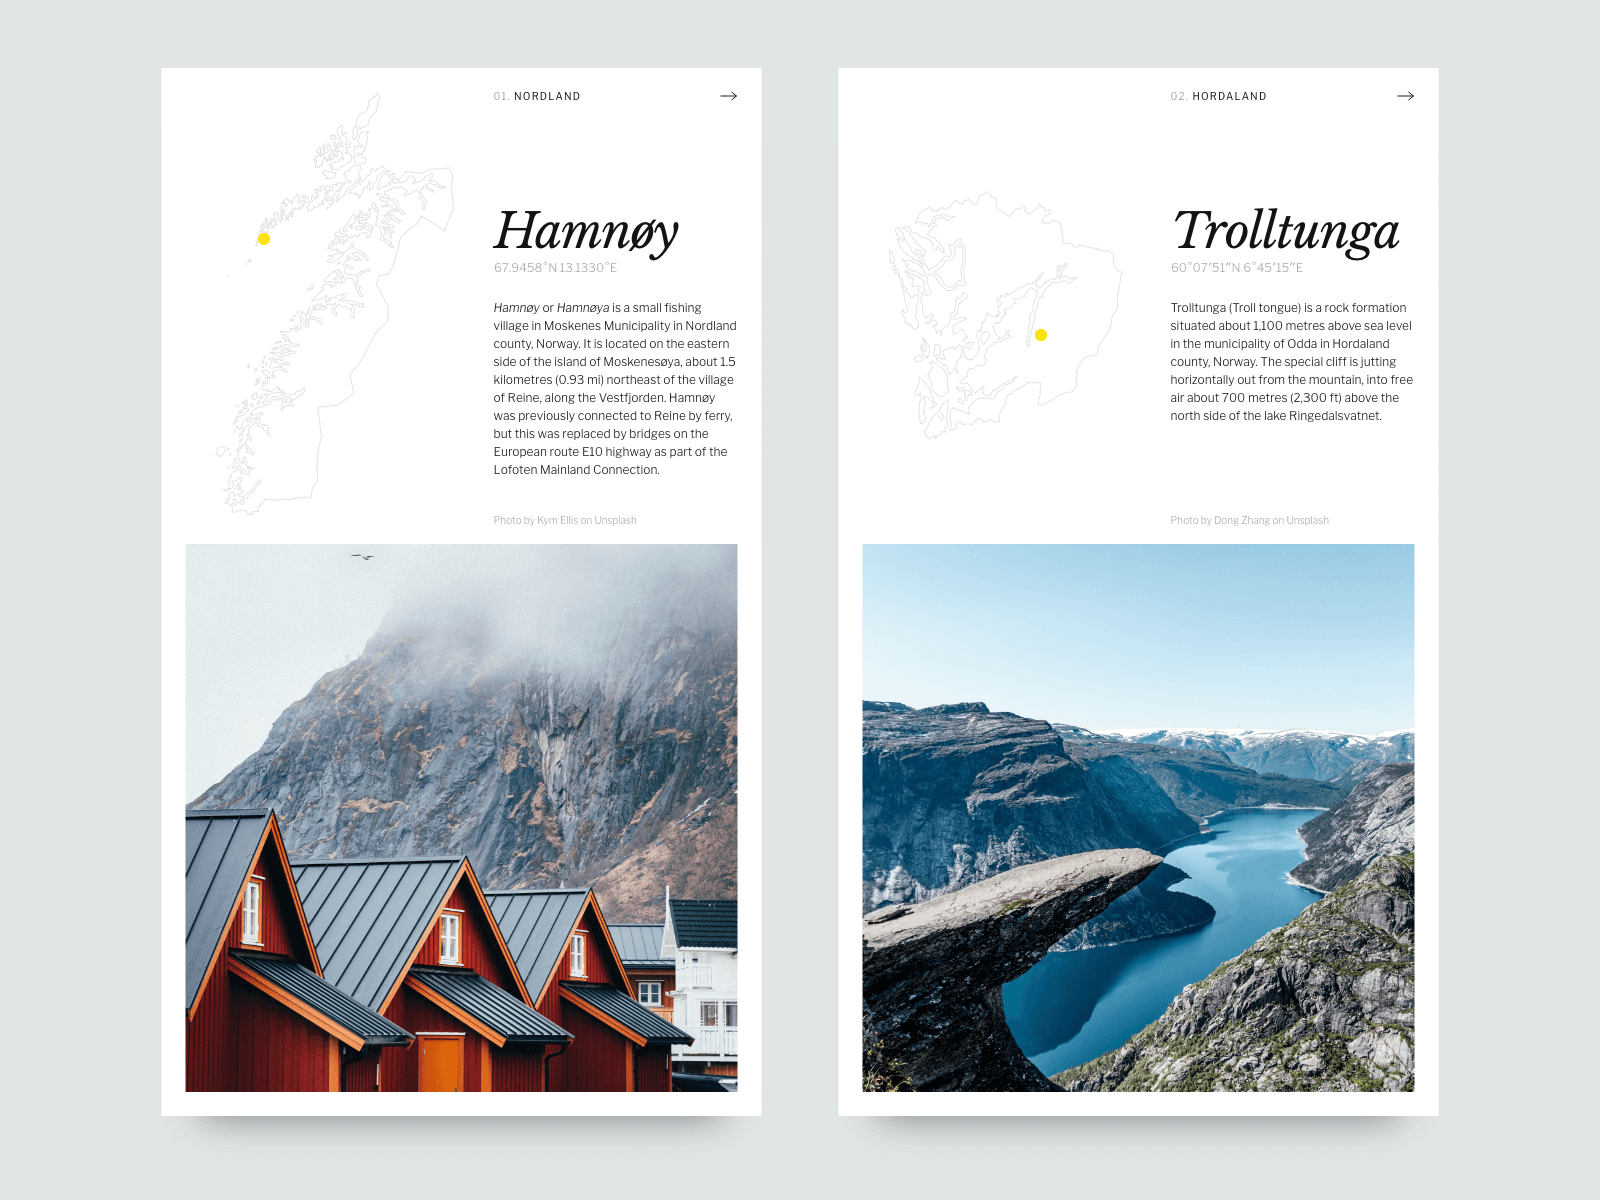 Norway Destination Cards